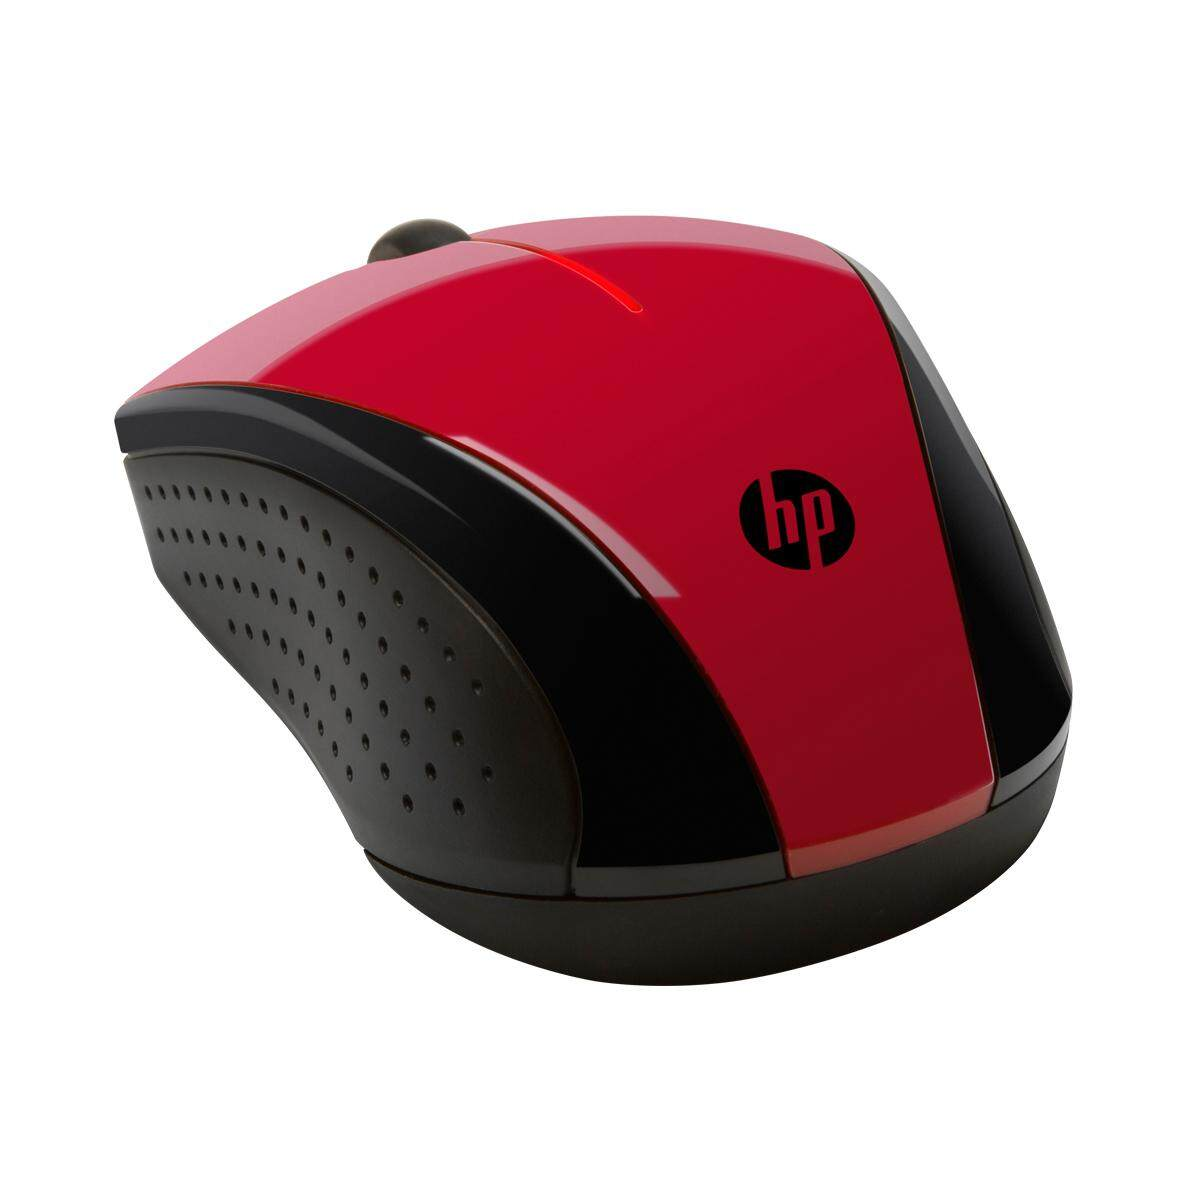 HP Wireless Mouse X3000 - Red Malaysia